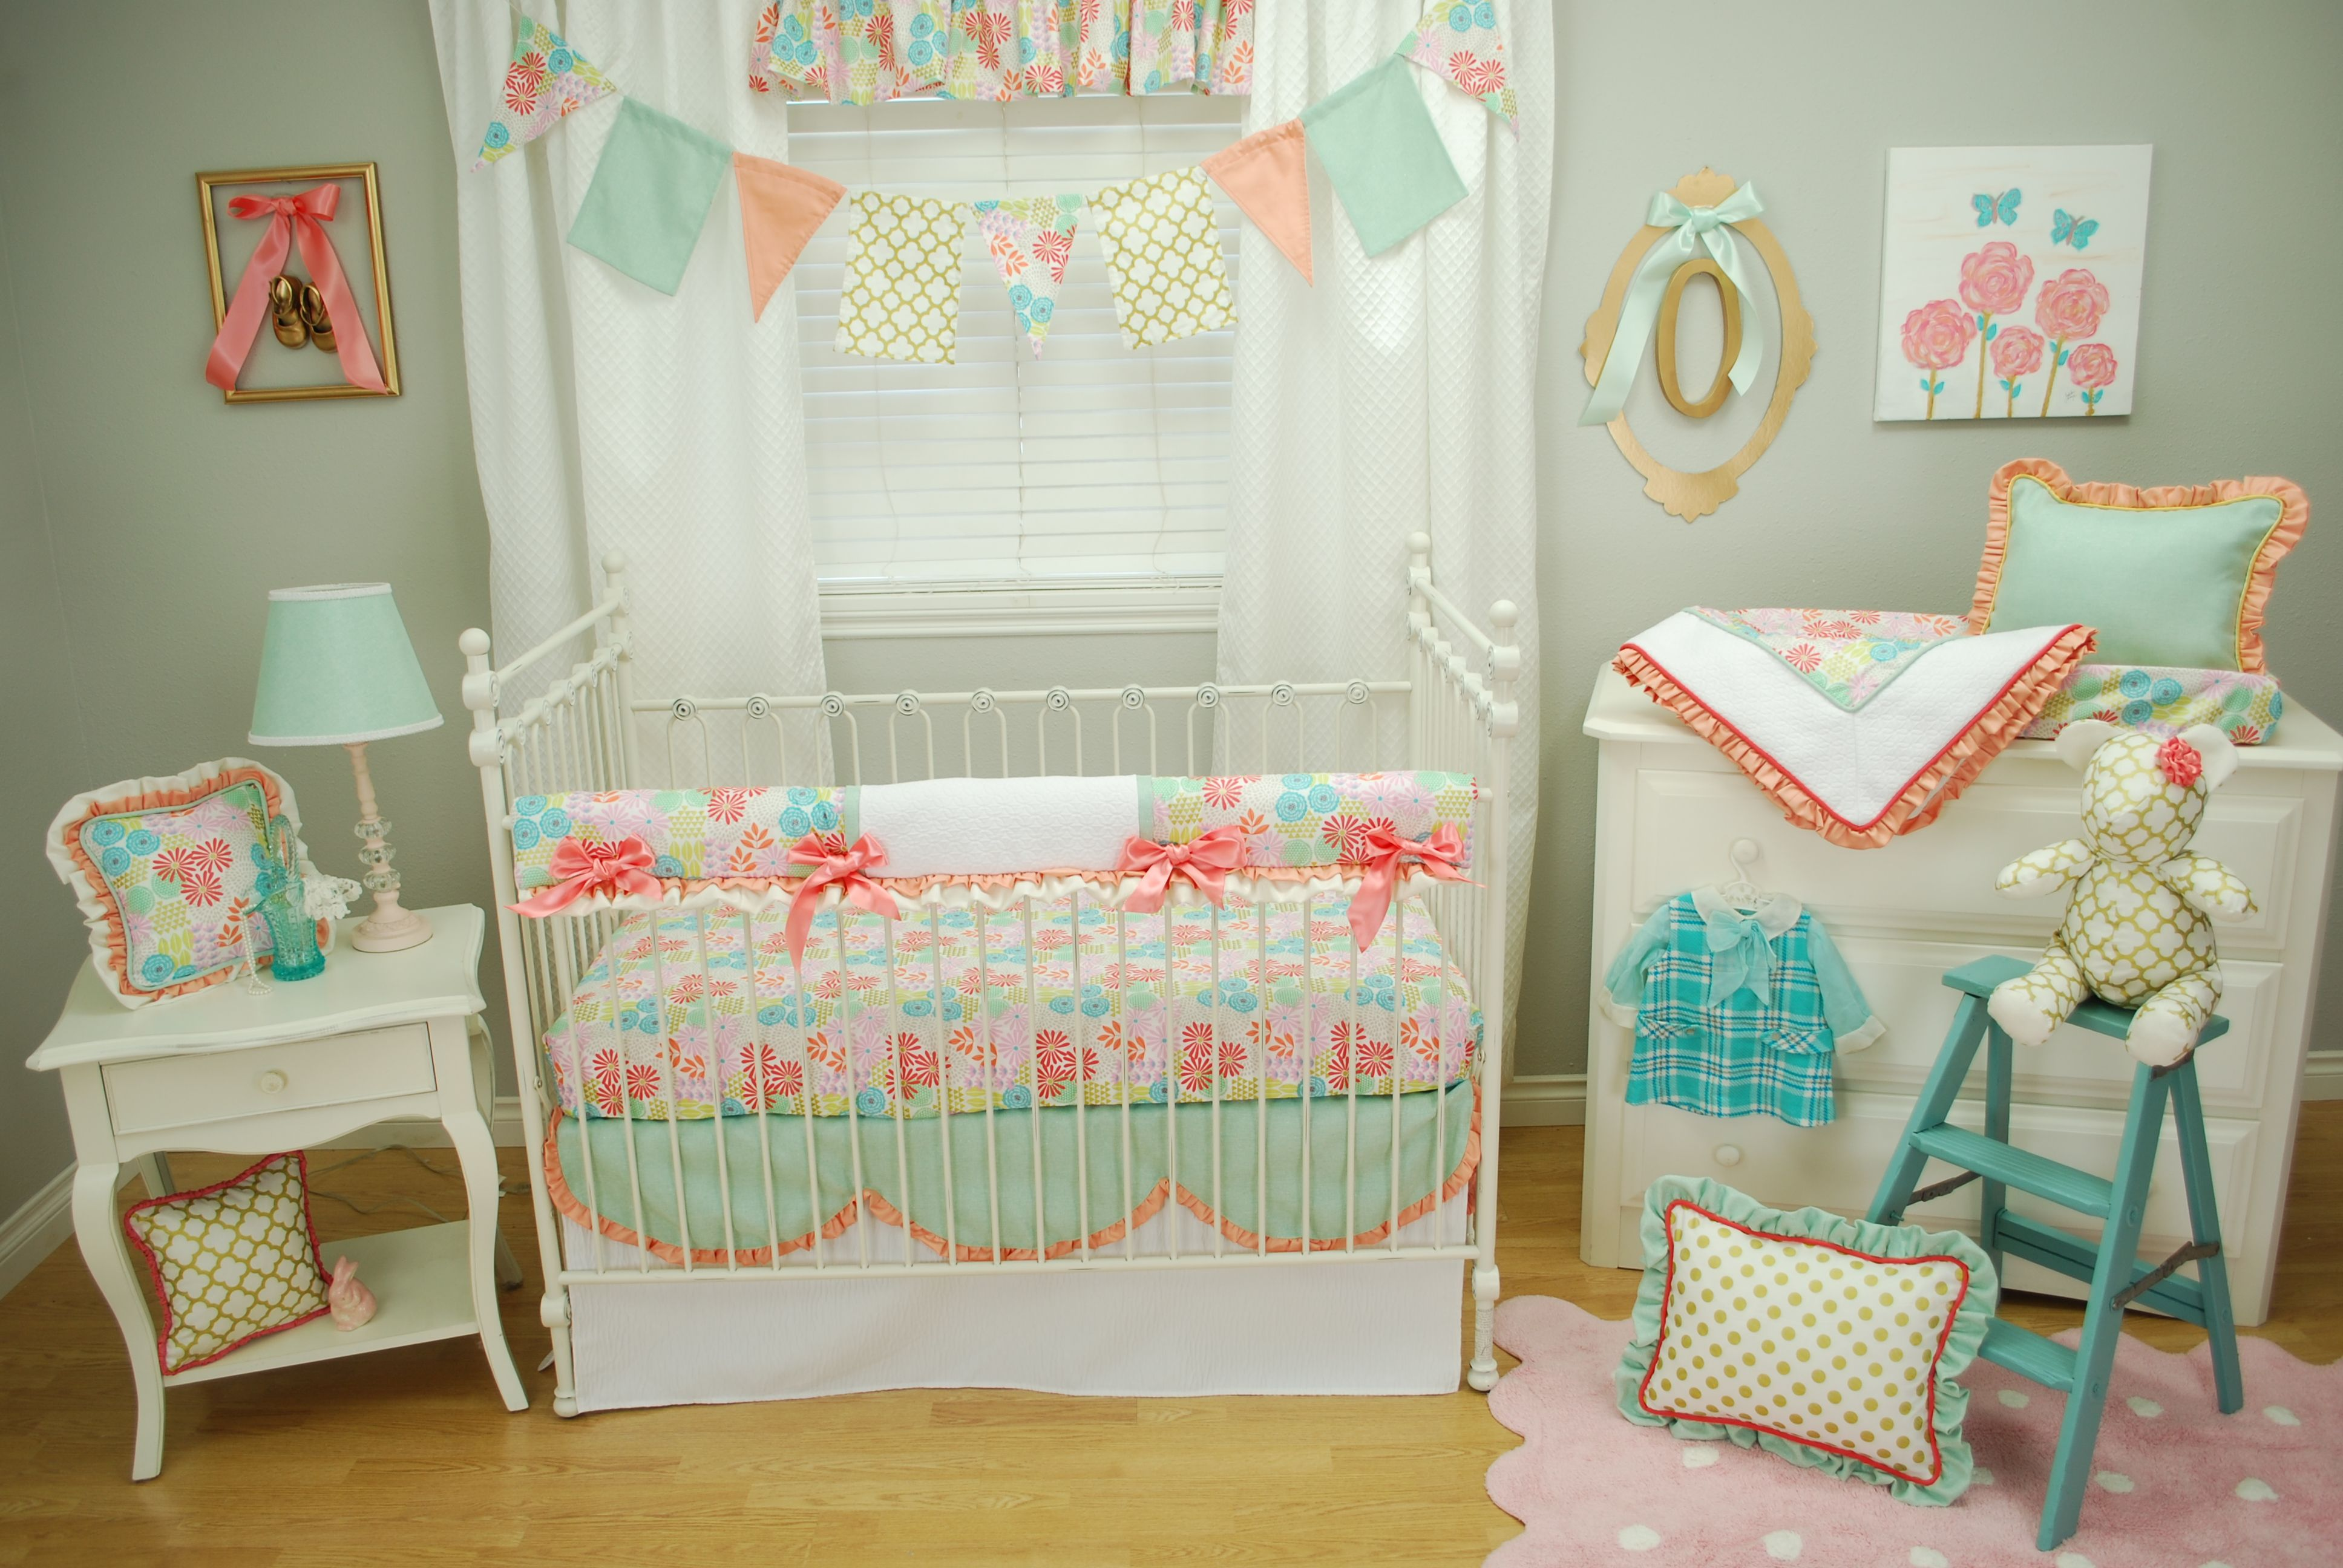 Coral Aqua Mint and Gold floral crib bedding with scallops and